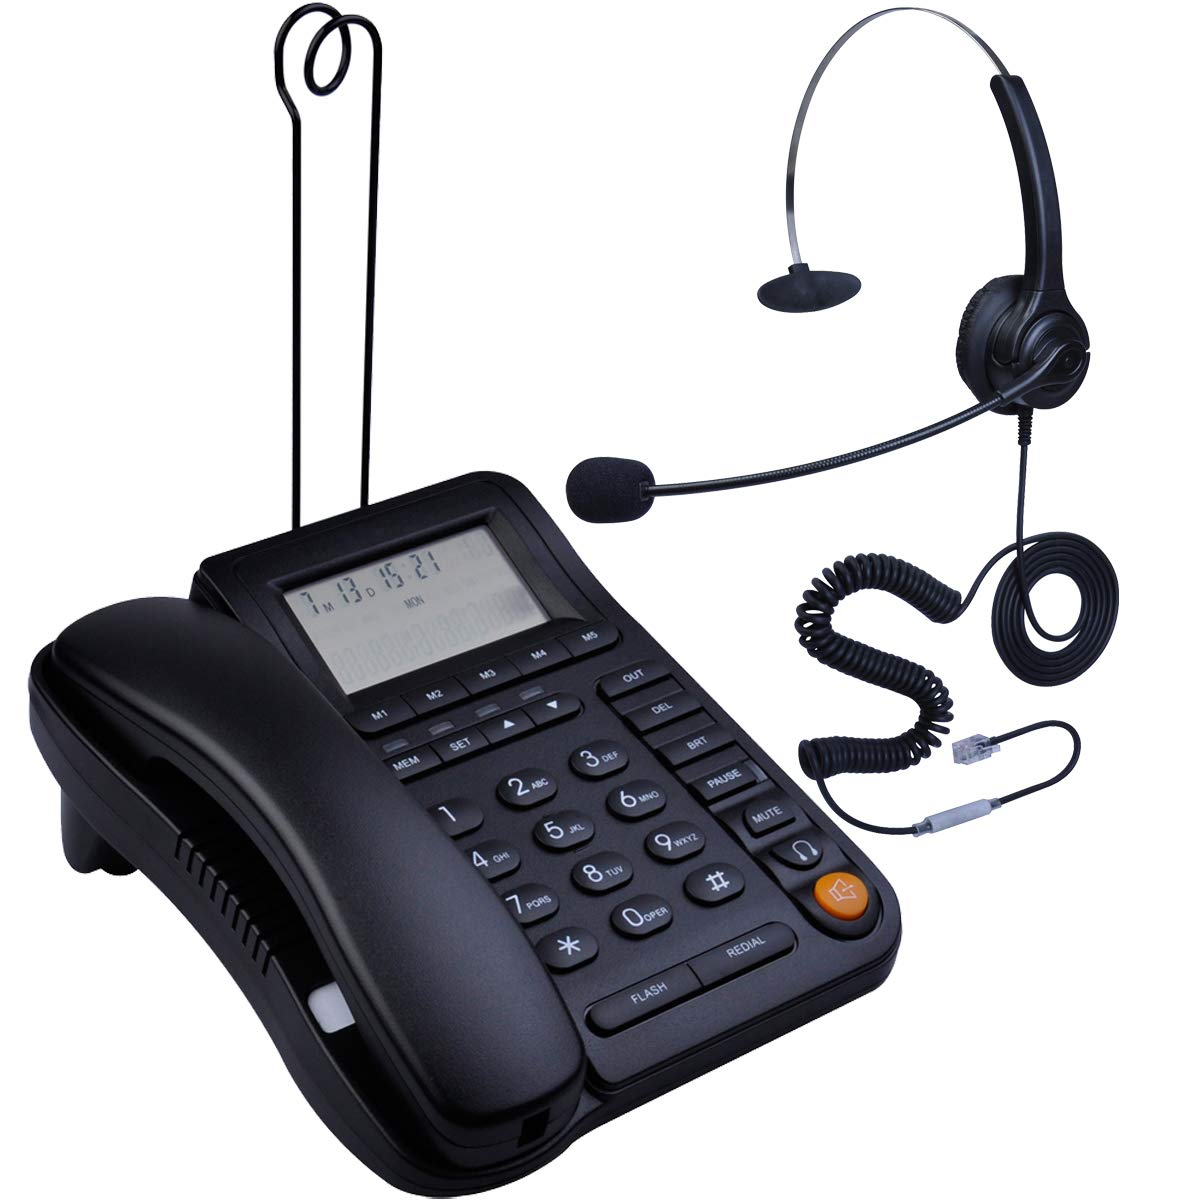 HePesTer P-017BN-2 Call Center Corded Phone with Headset Caller ID Speakerphone Home Office Landline Telephone by HePesTer